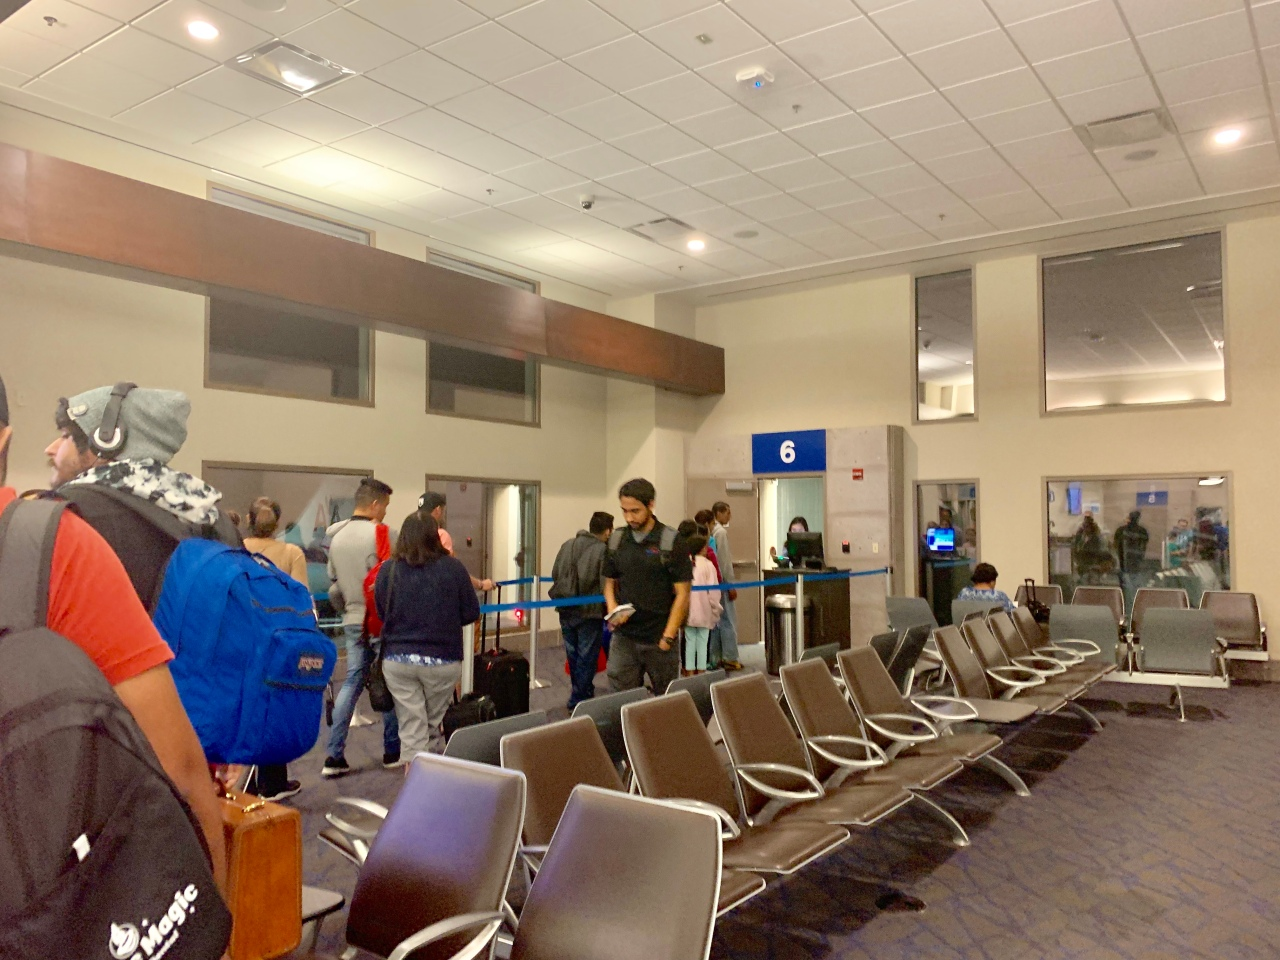 Migrants buying 1-way airline tickets from McAllen to northern destinations